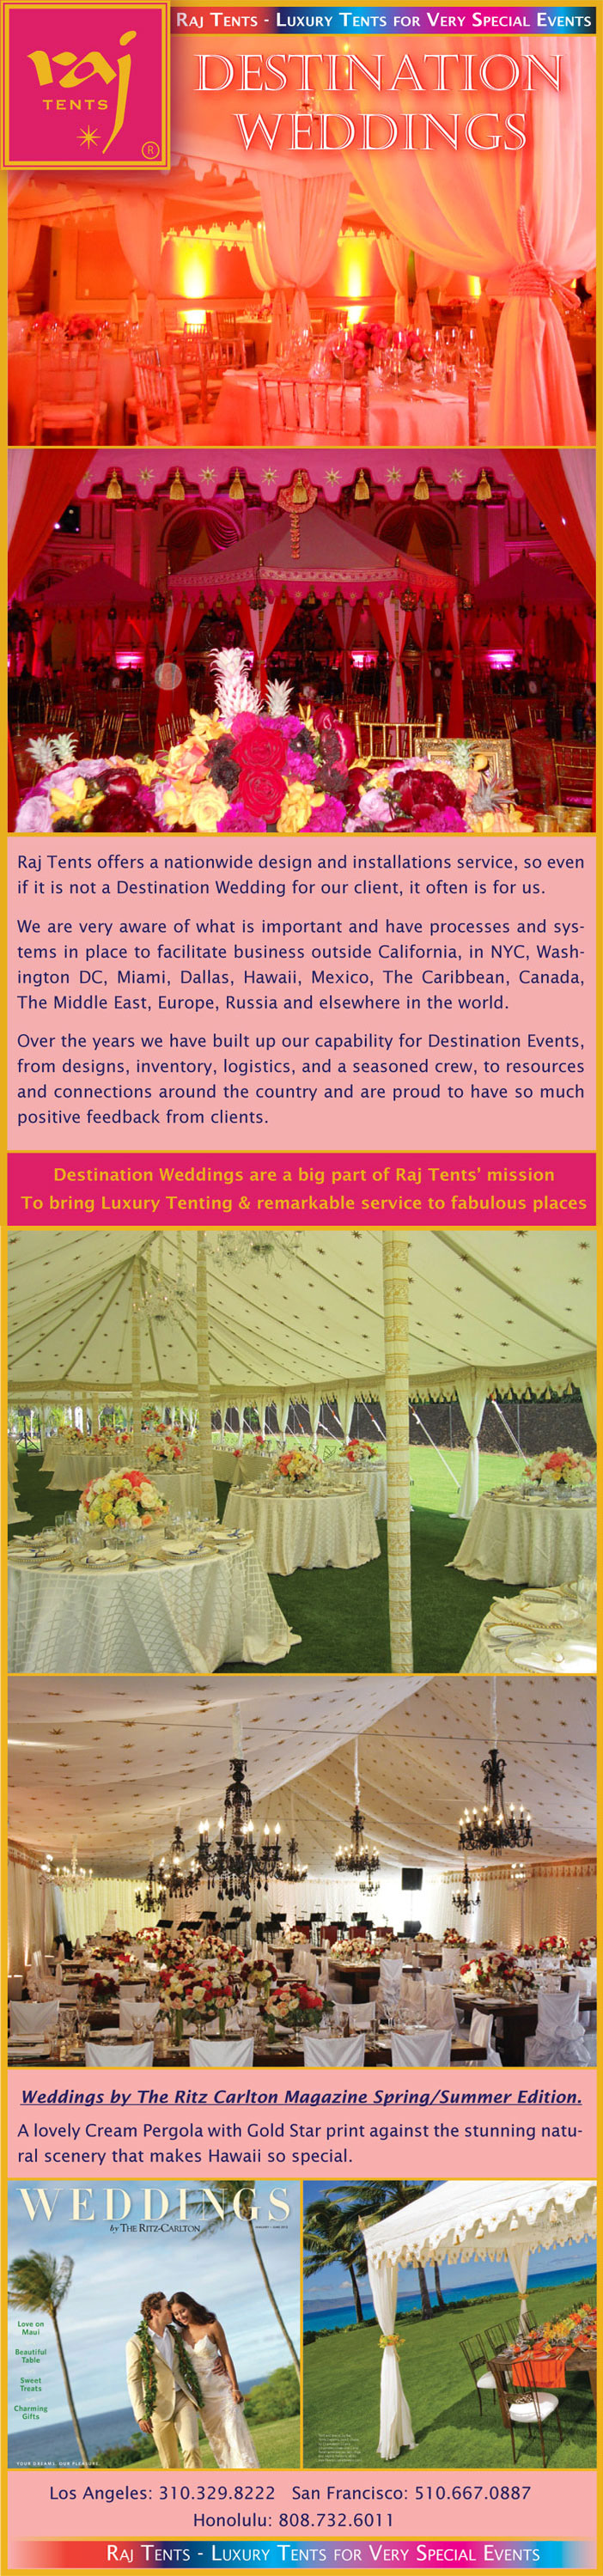 Raj Tents Destination Weddings